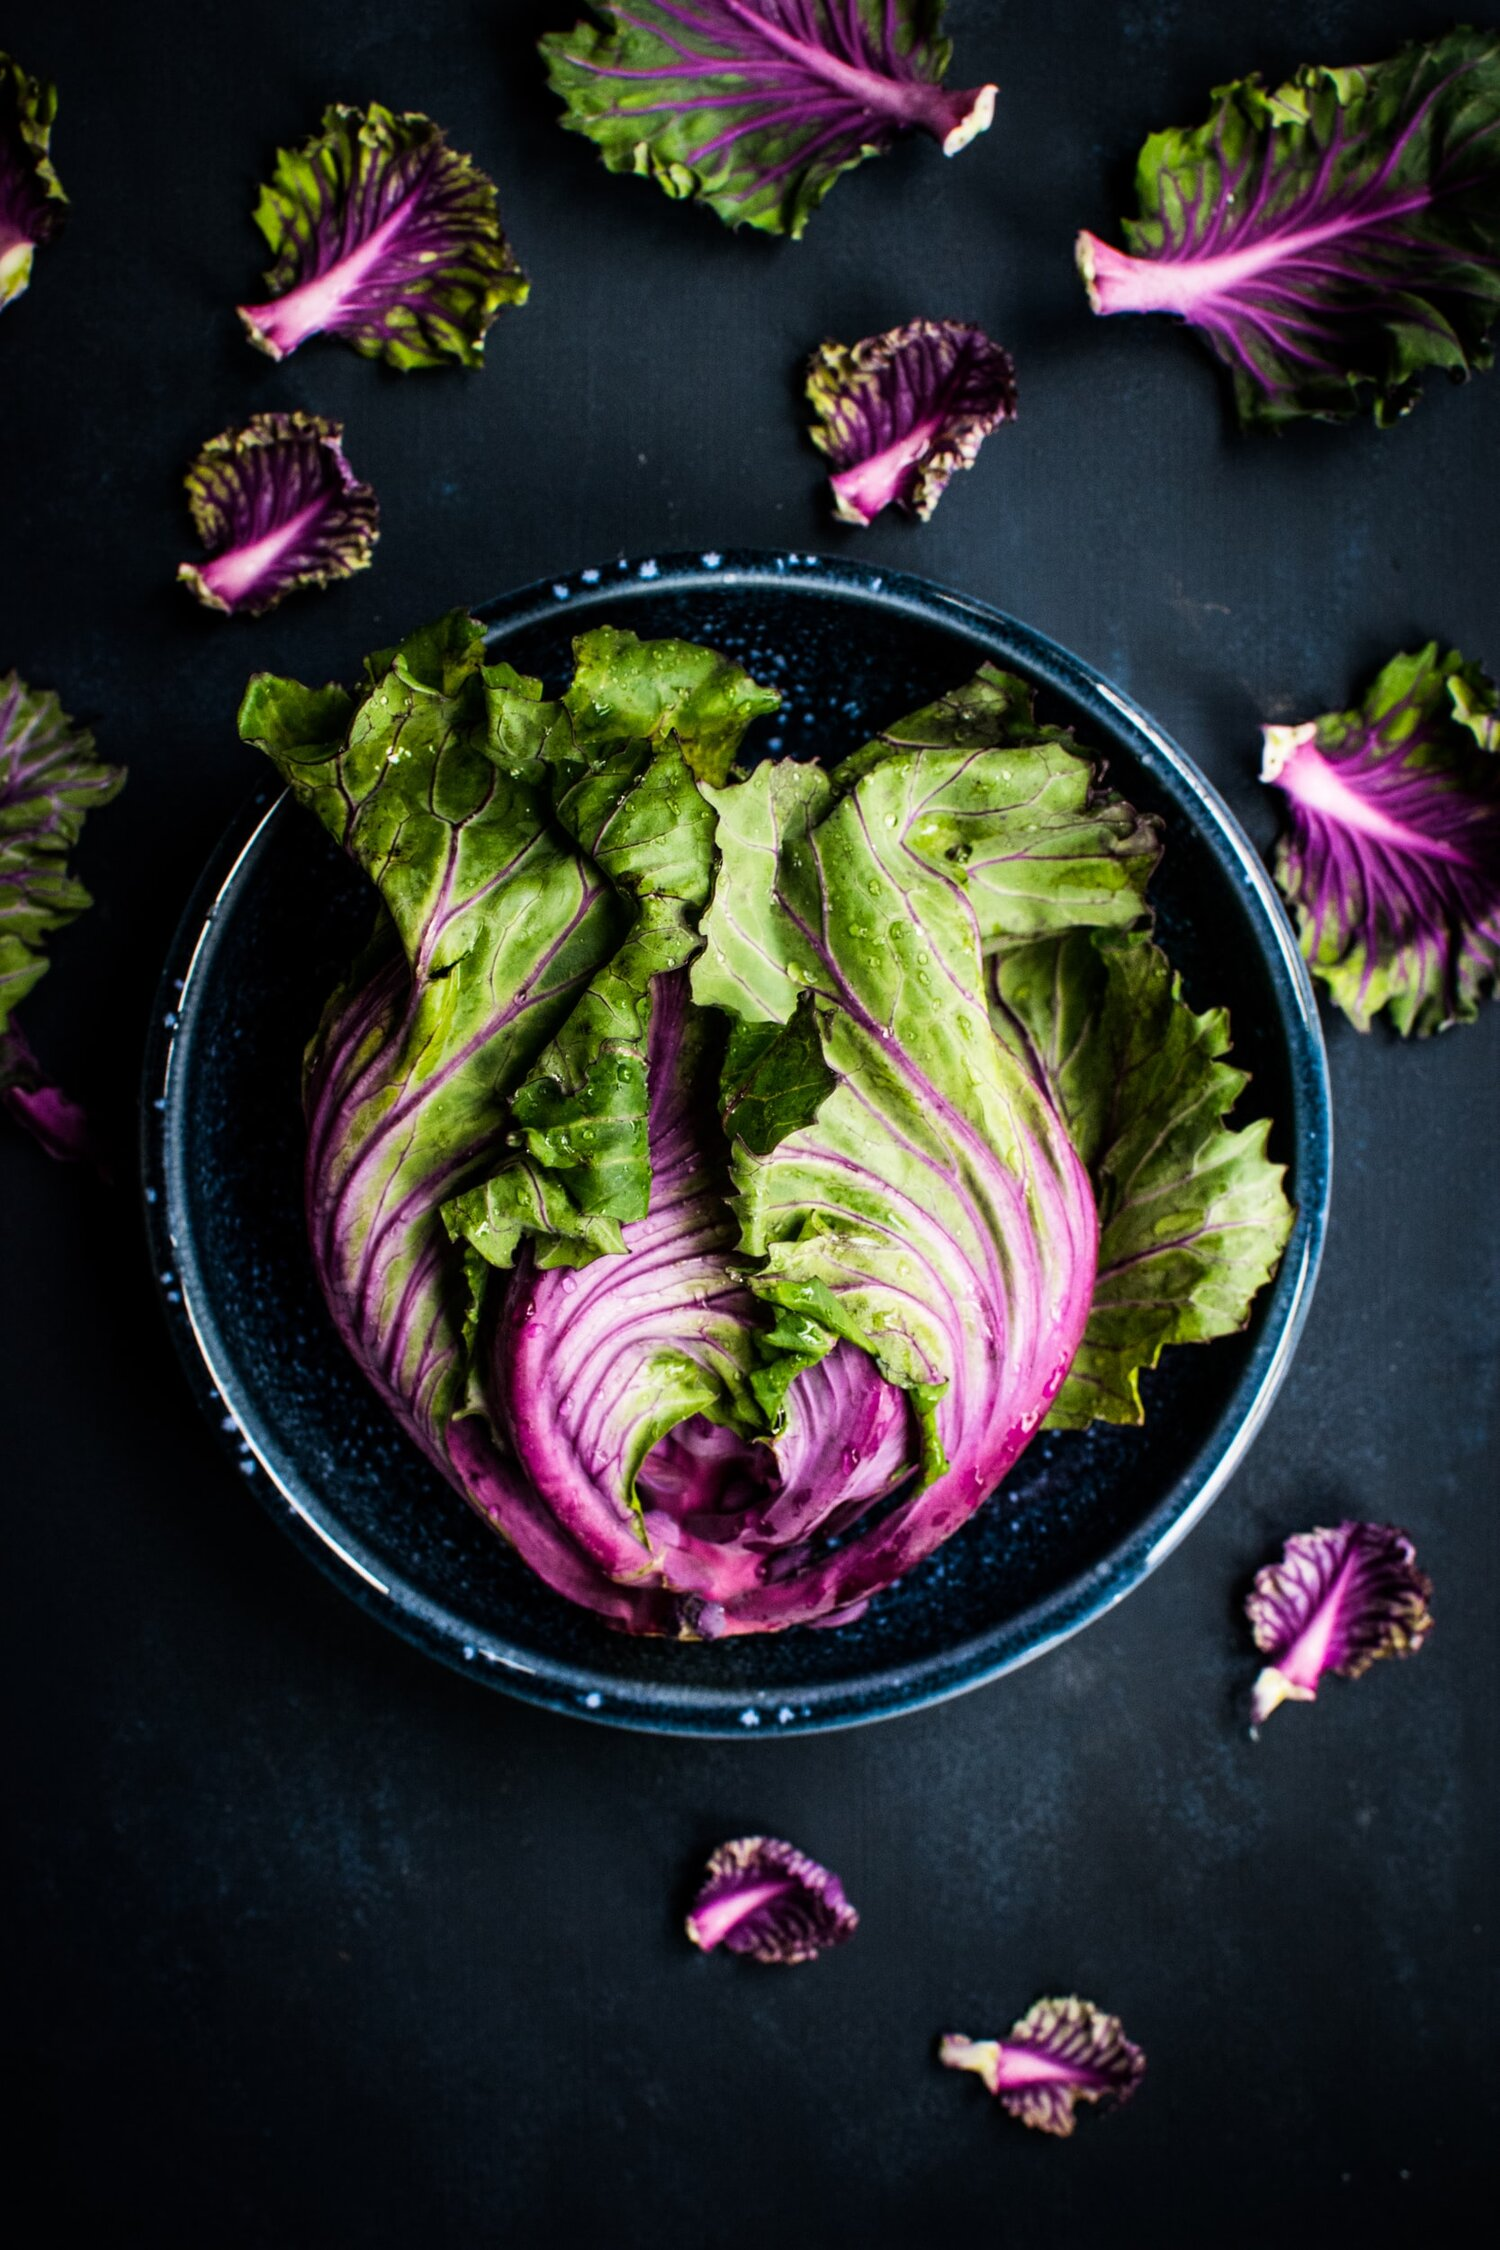 Purple lettuces resting in a green bowl